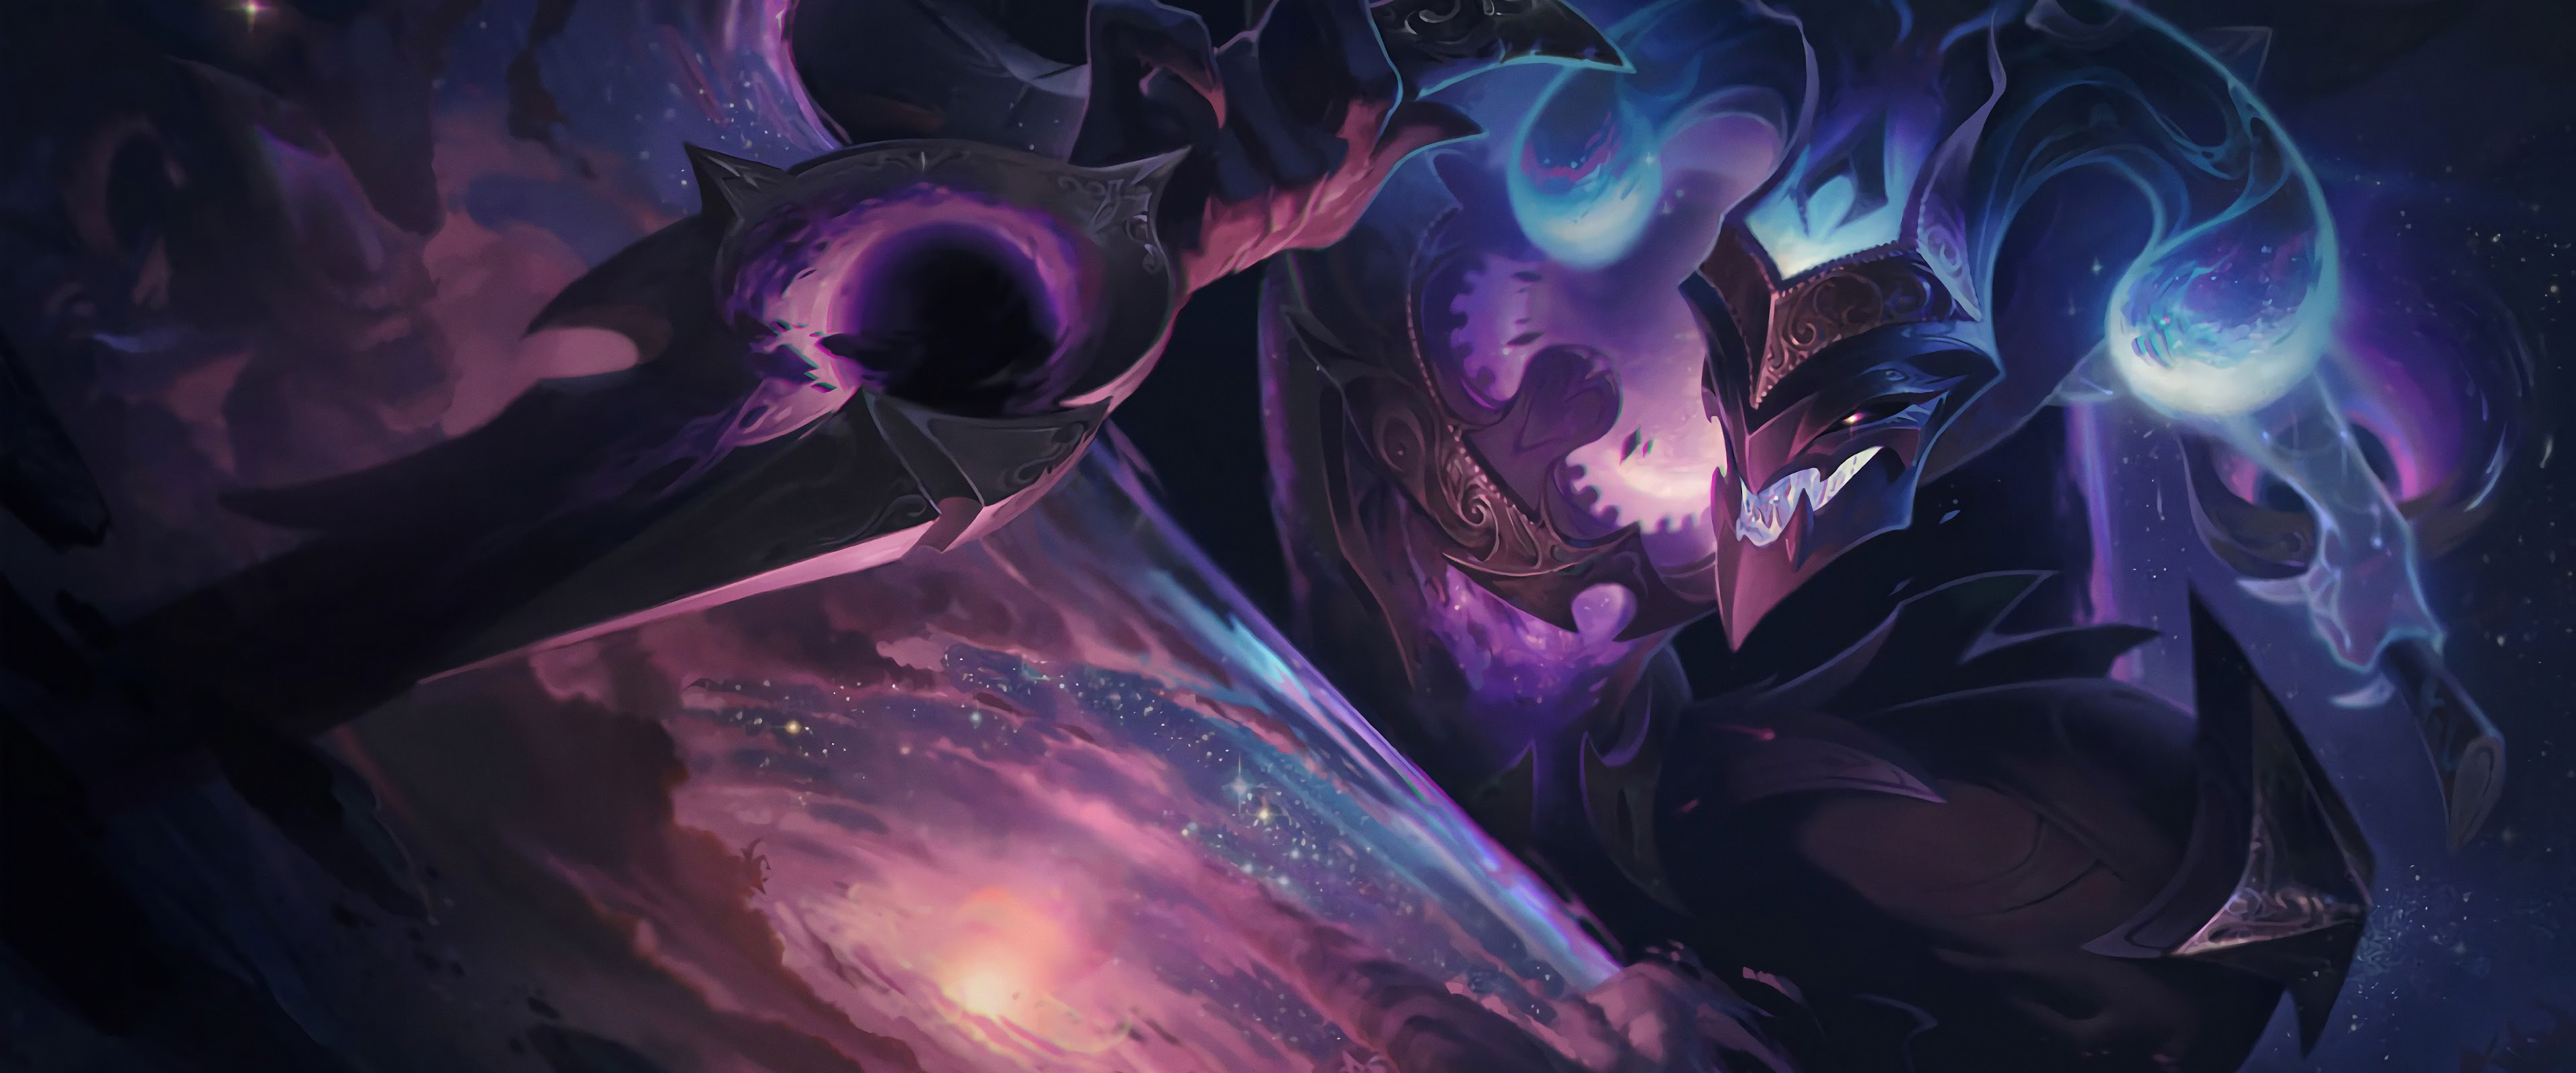 Dark Star Shaco Splash Art Lol 4k Wallpaper 89